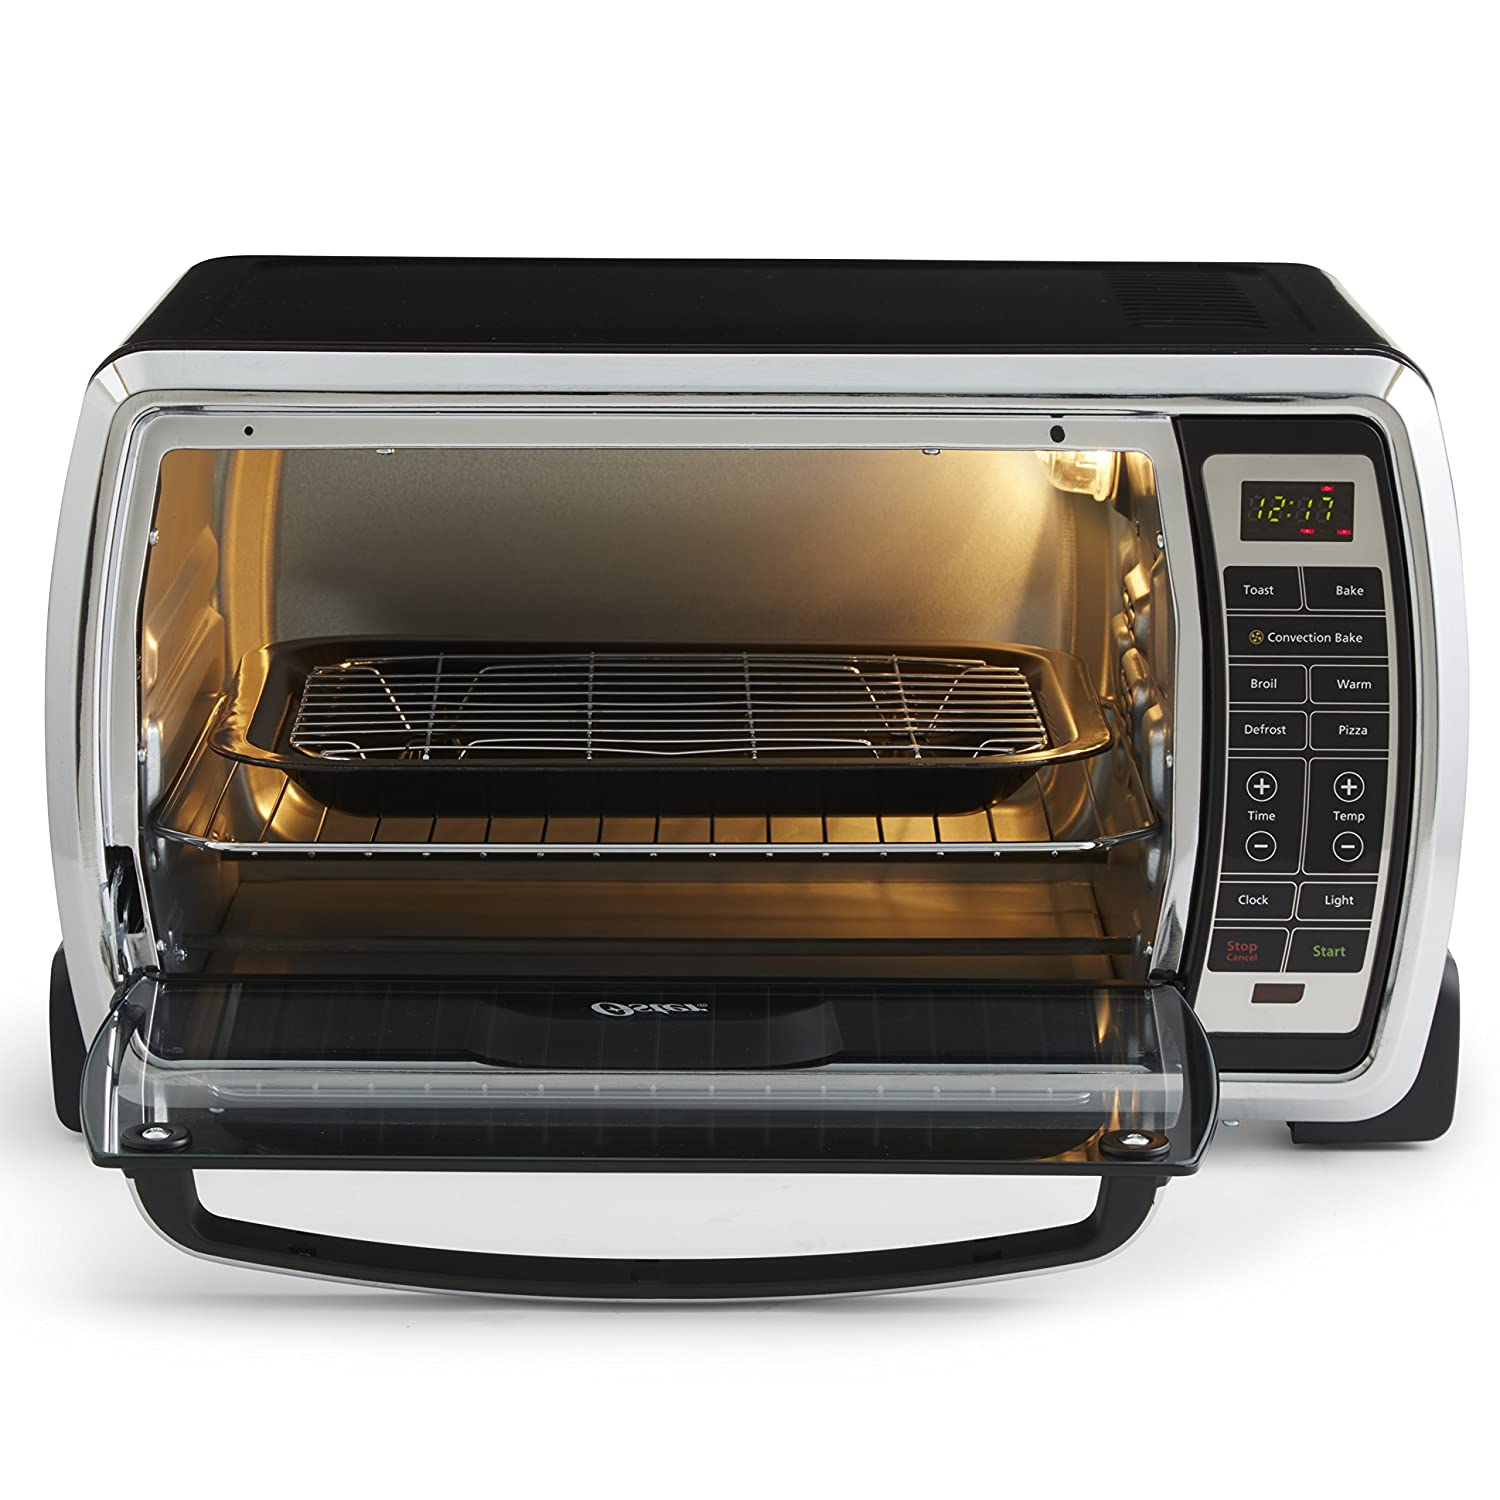 Best Toaster Oven 2019 2020 Top Rated Toaster Ovens And